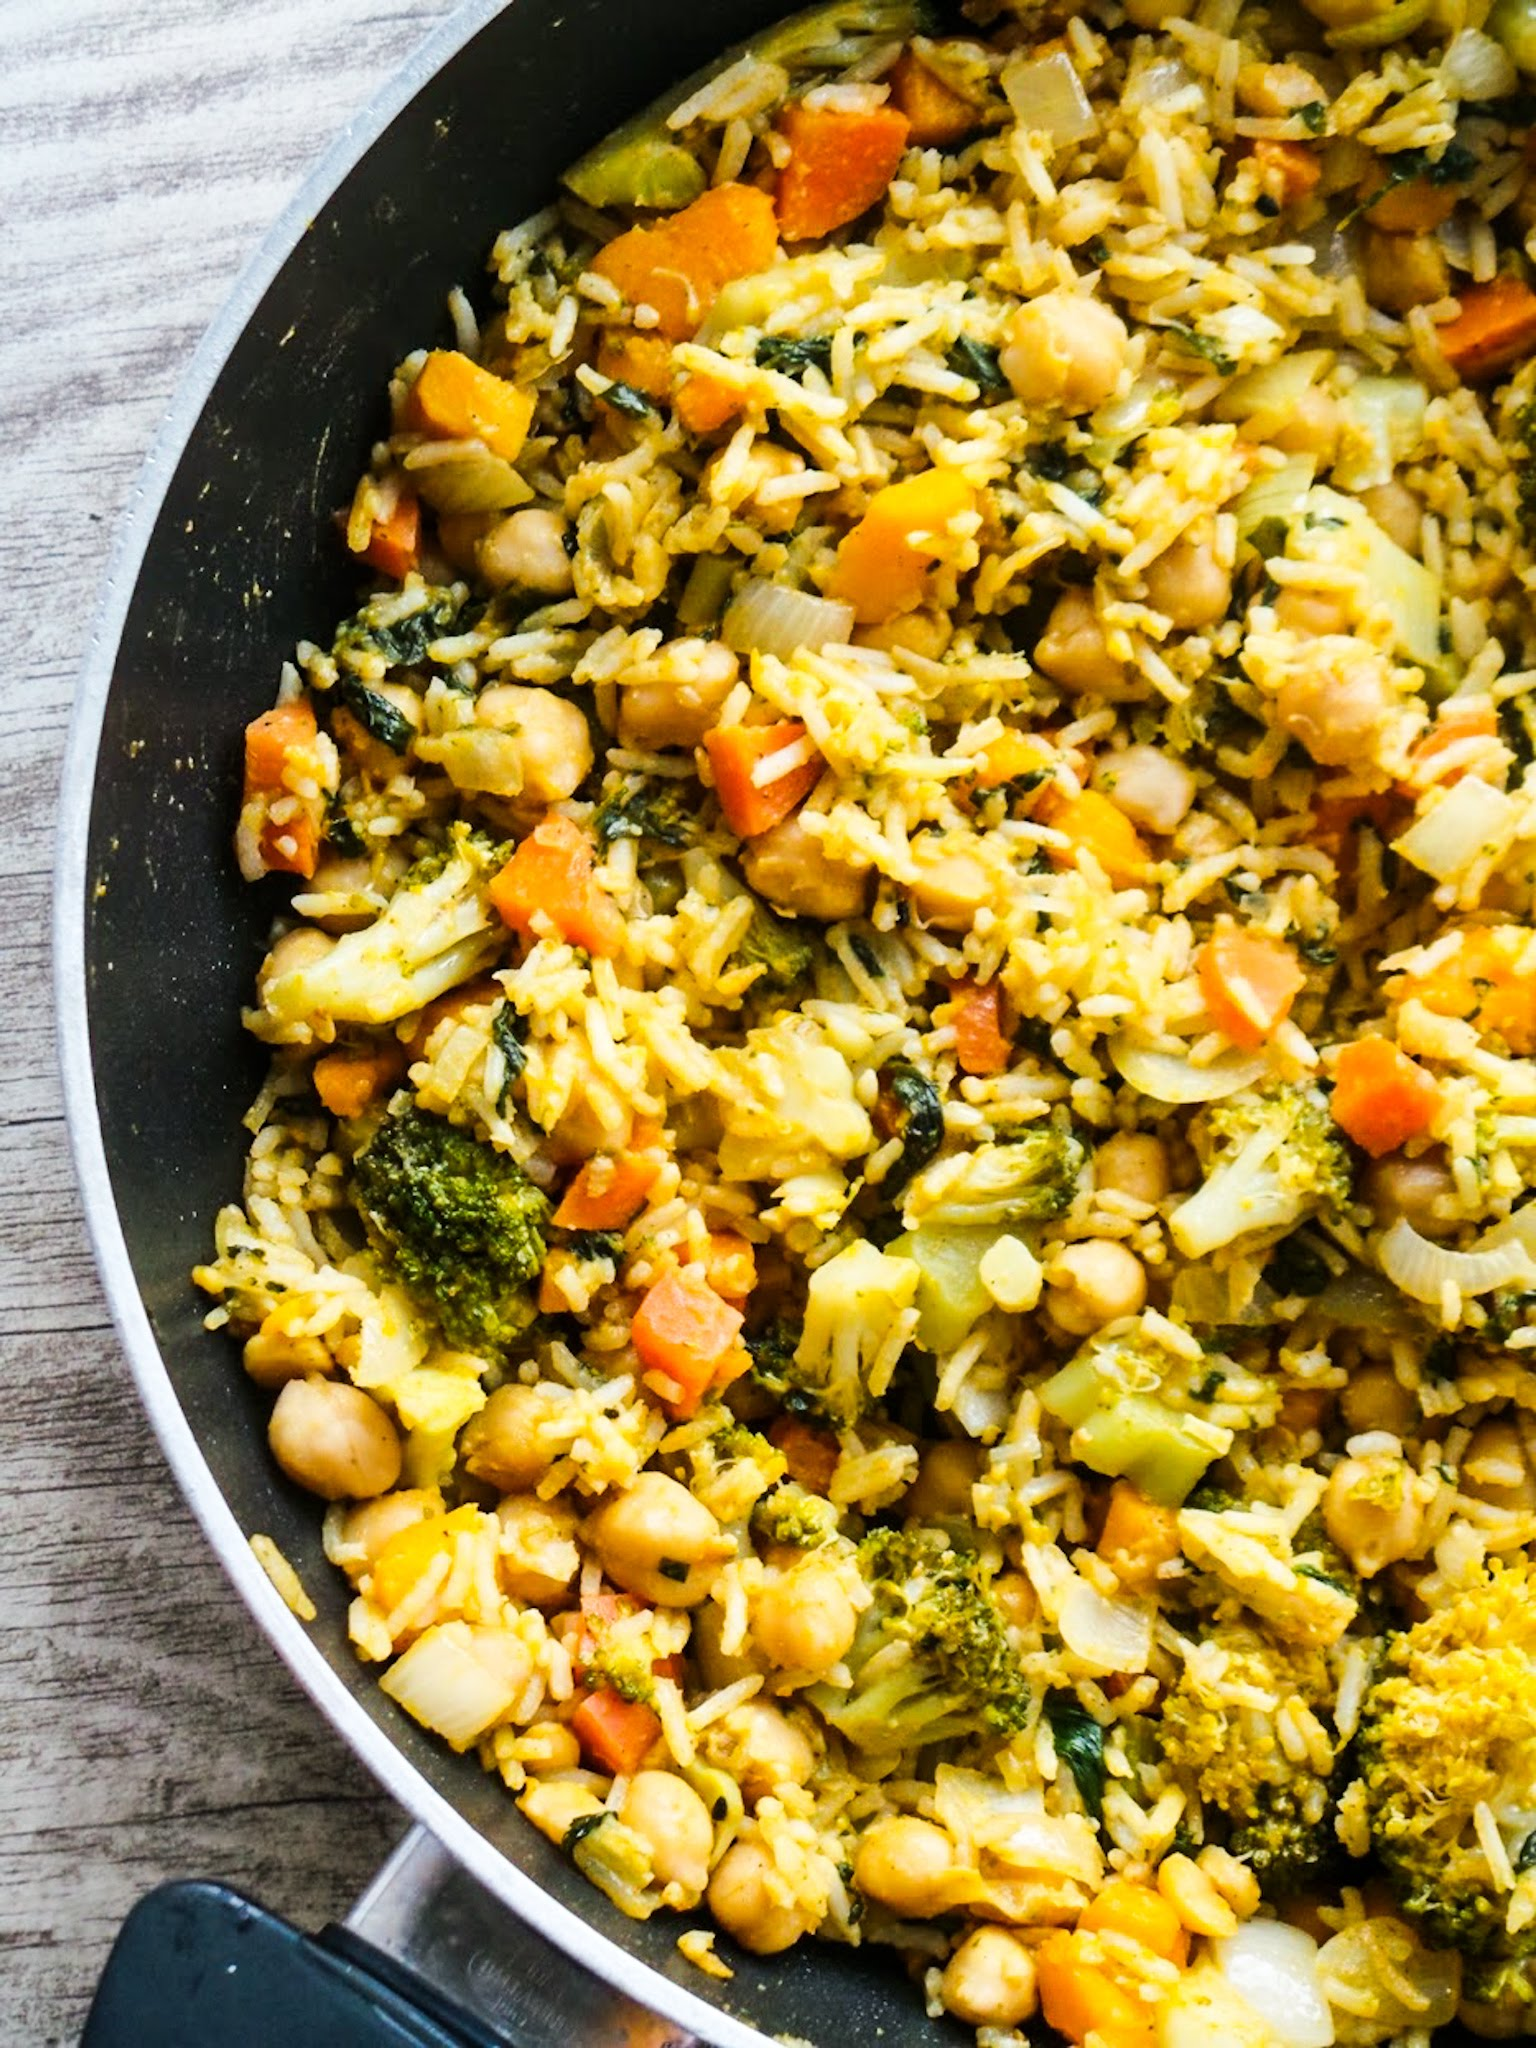 Easy and healthy chickpea curry recipe! This vegan chickpea recipe is healthy, simple and delicious - perfect for dinner and you can use the leftovers to make a different dish!